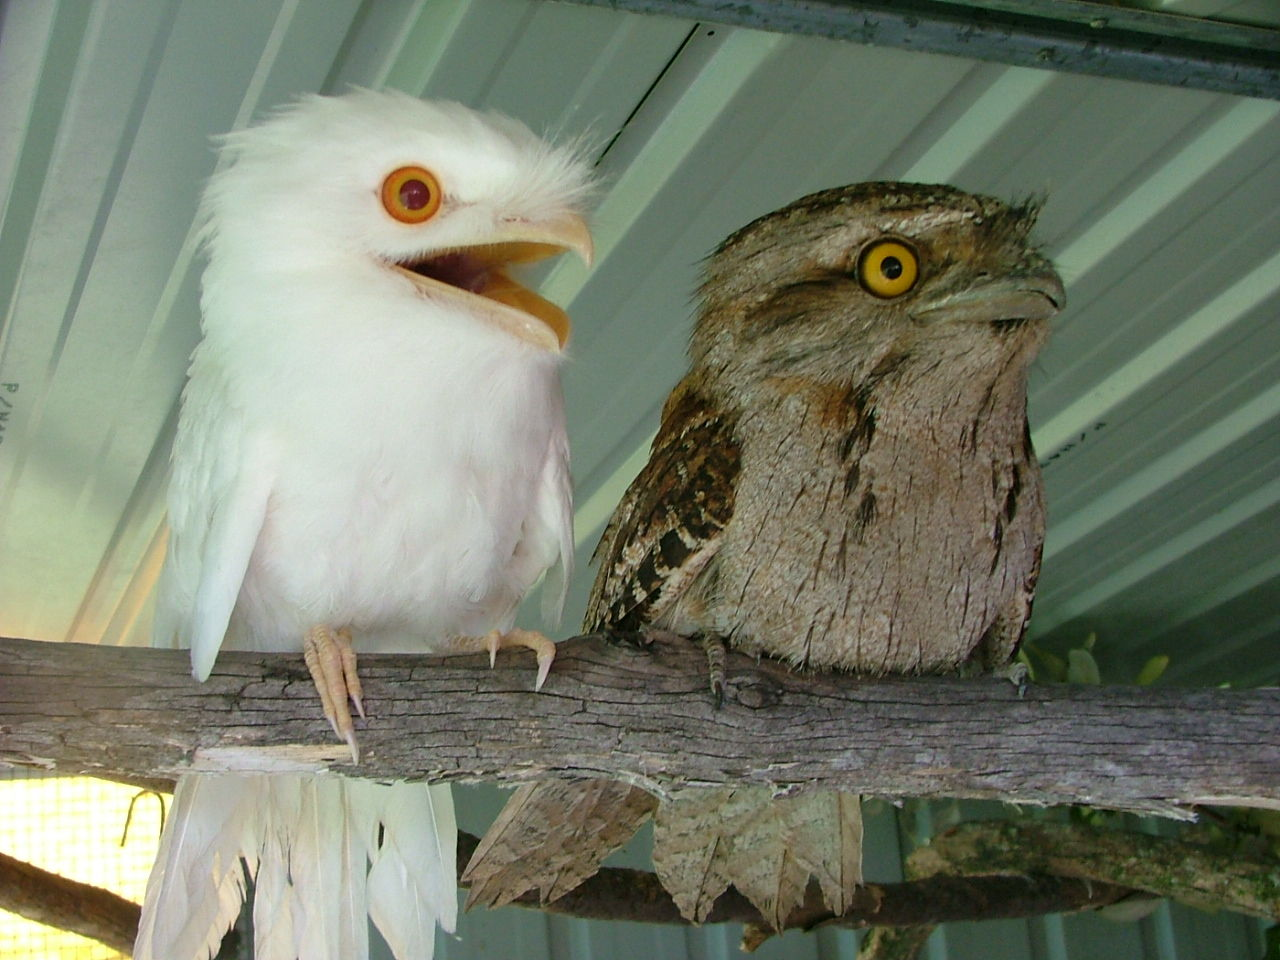 Tawny Frogmouths are members of the Nightjar family of birds.